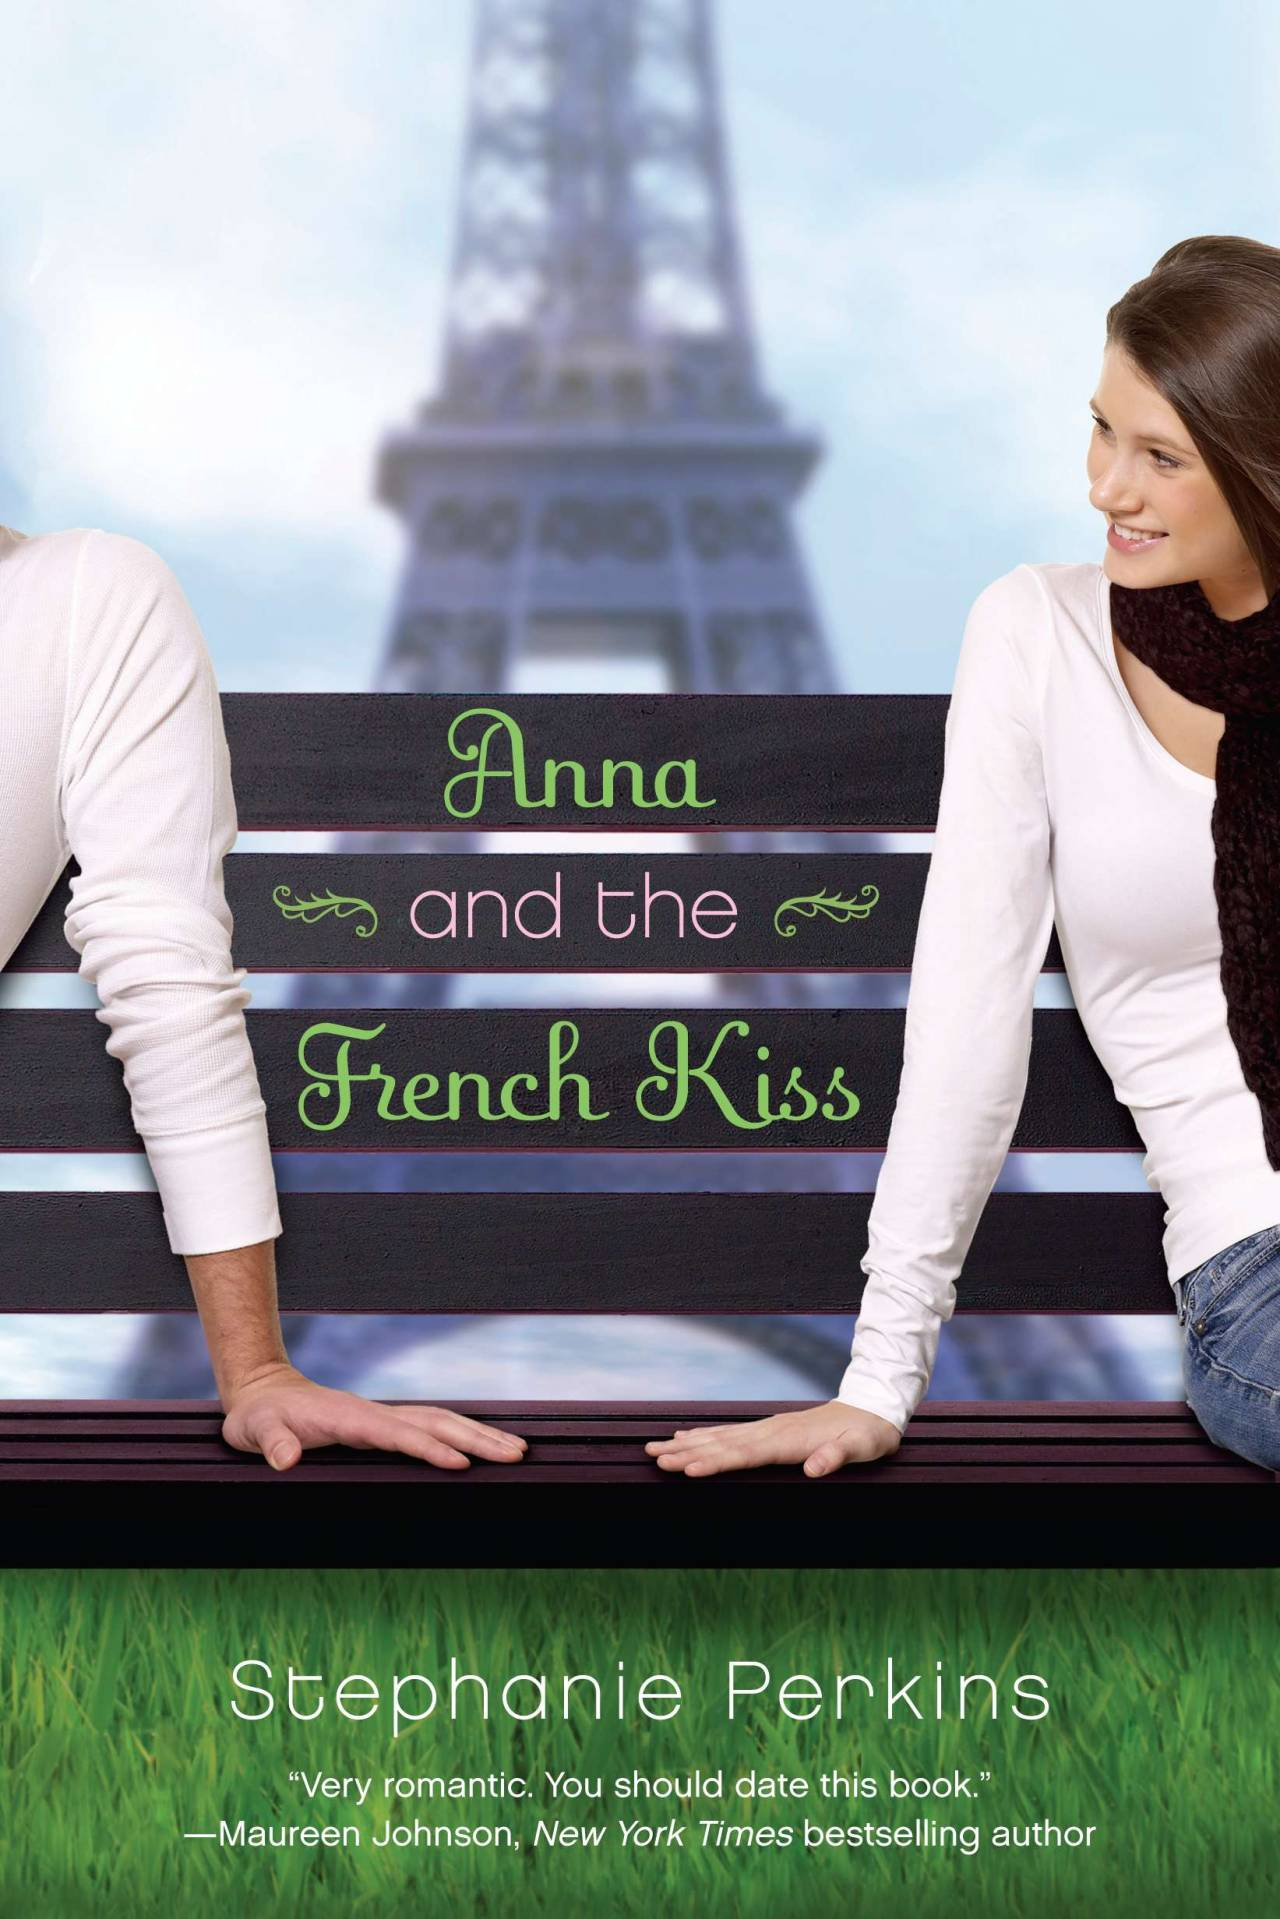 Who wants to read a deleted scene from Anna and the French Kiss? WE DO! Help Stephanie Perkins promote the Daily Deal coming up this Sunday, 1/27, and she'll let us all read a never before read scene! Check out her website for more info, but all you have to do is tweet/facebook/tumbl the following info: This Sunday.One day only.Anna and the French Kiss. Ebook. $2.99. (Cheaper than a Big Mac.)  You can buy it here: Penguin Amazon Barnes and Noble Kobo iBookstore  You guys, I want to read this scene REALLY badly, so please, please, please, help us out!